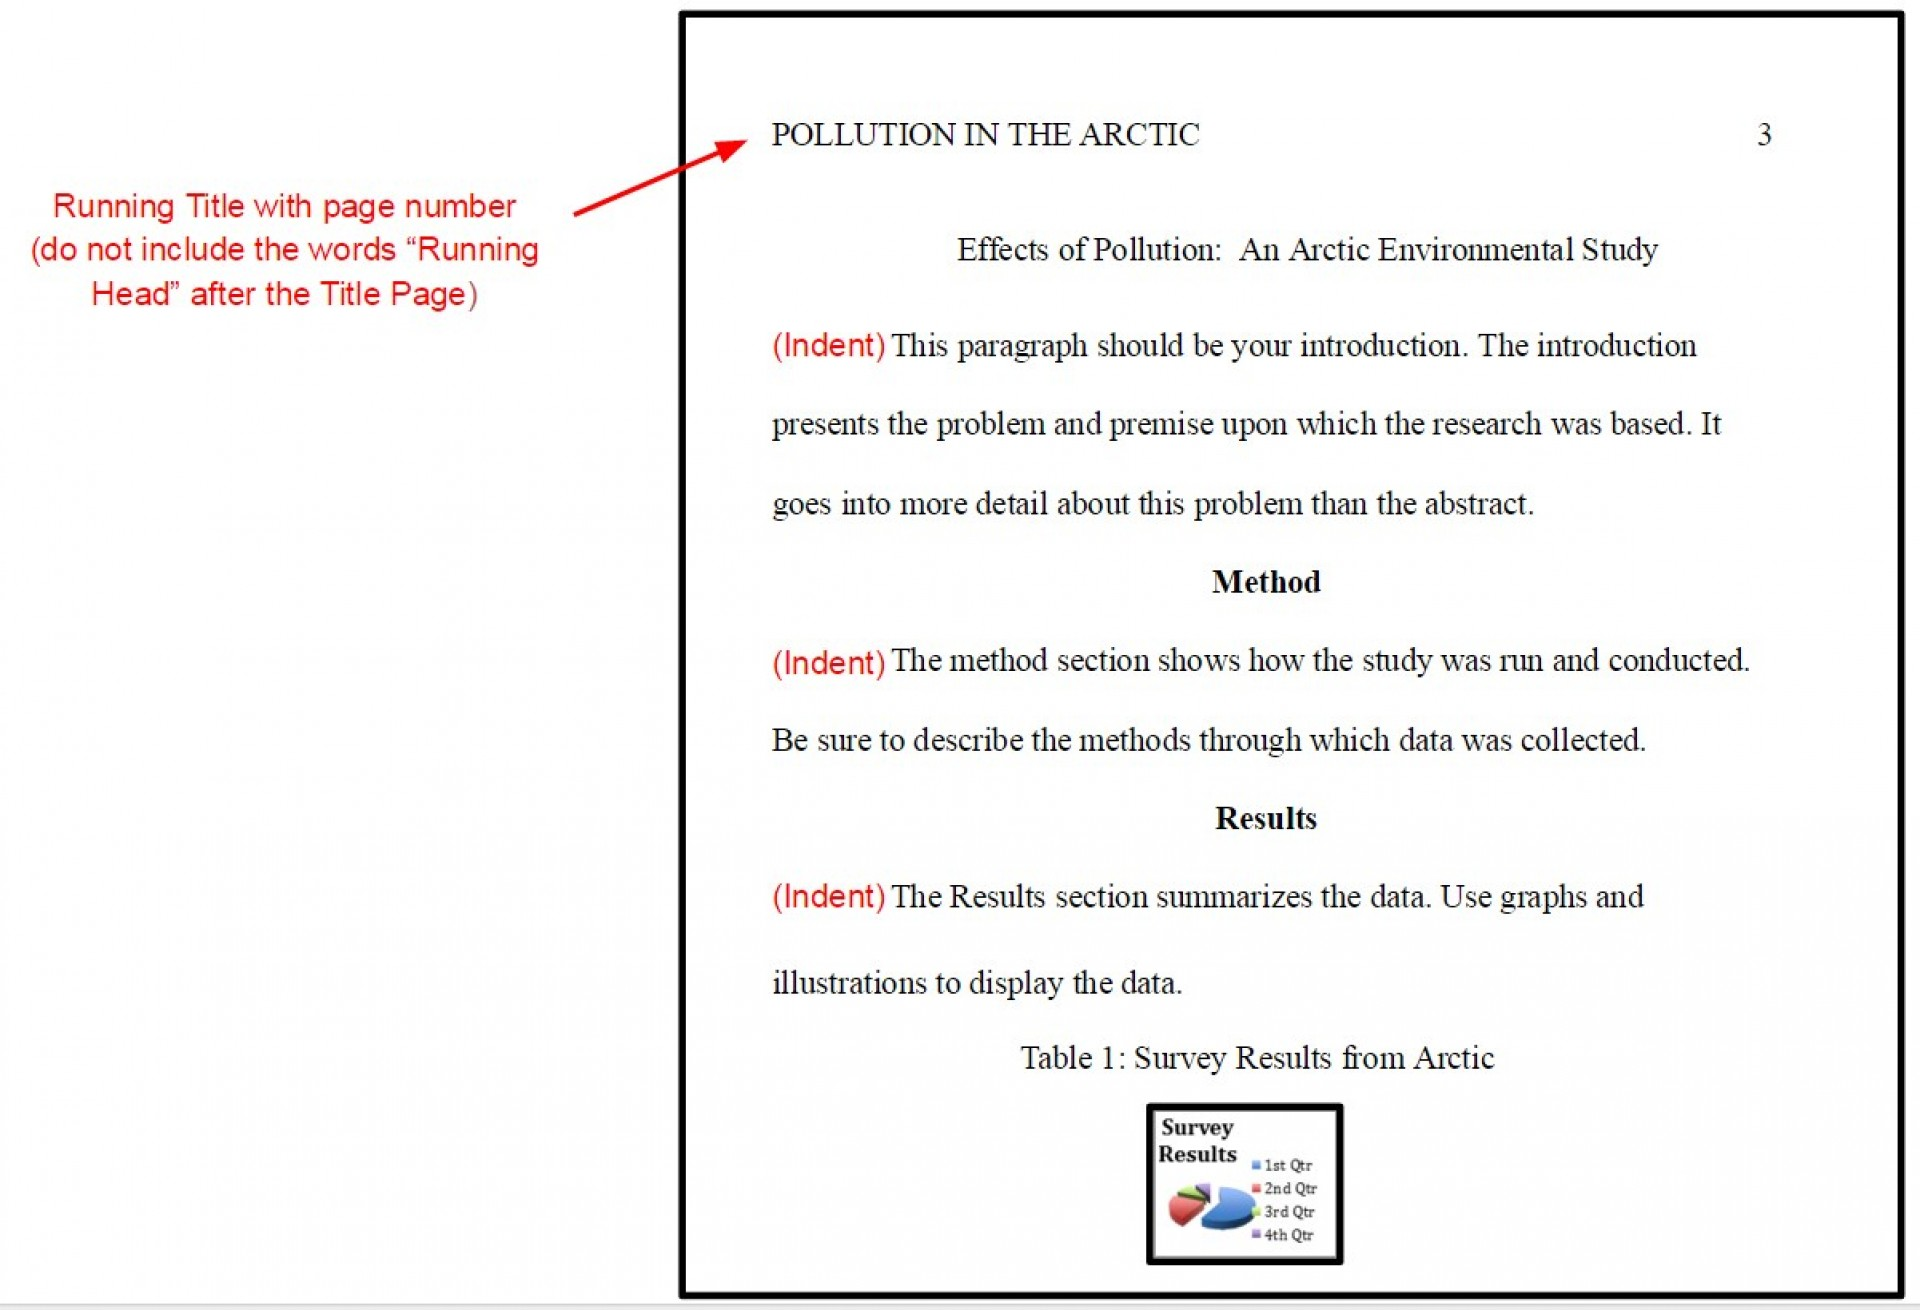 001 Apamethods Research Paper How To Cite In Apa Fearsome A Style Write Bibliography For Format 1920